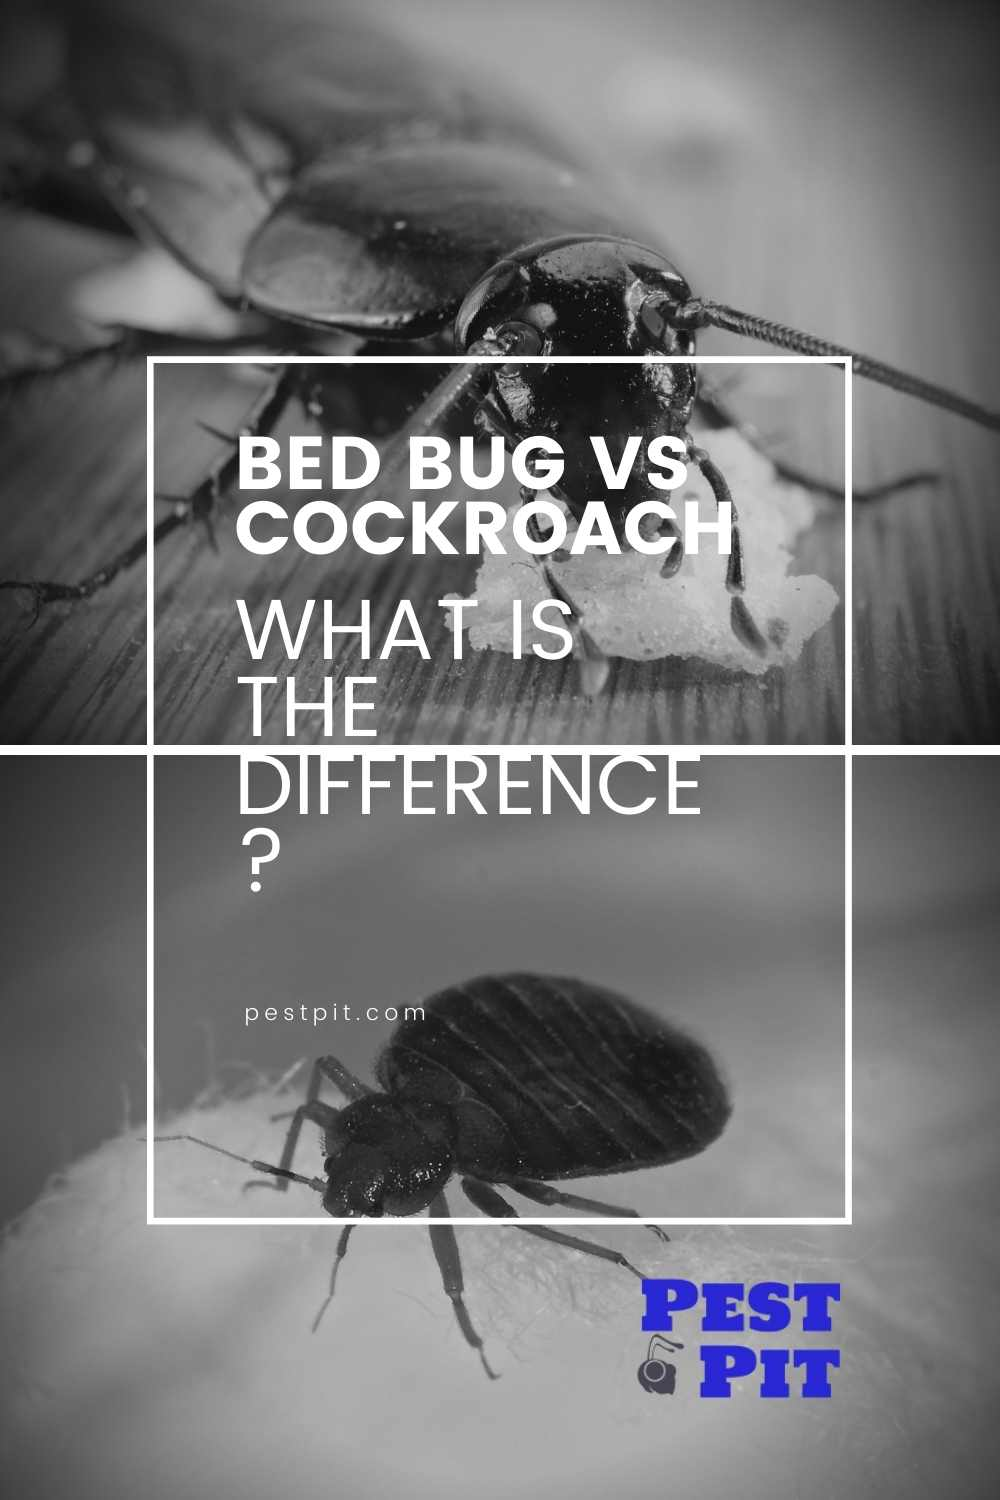 Roach v bed bugs the difference